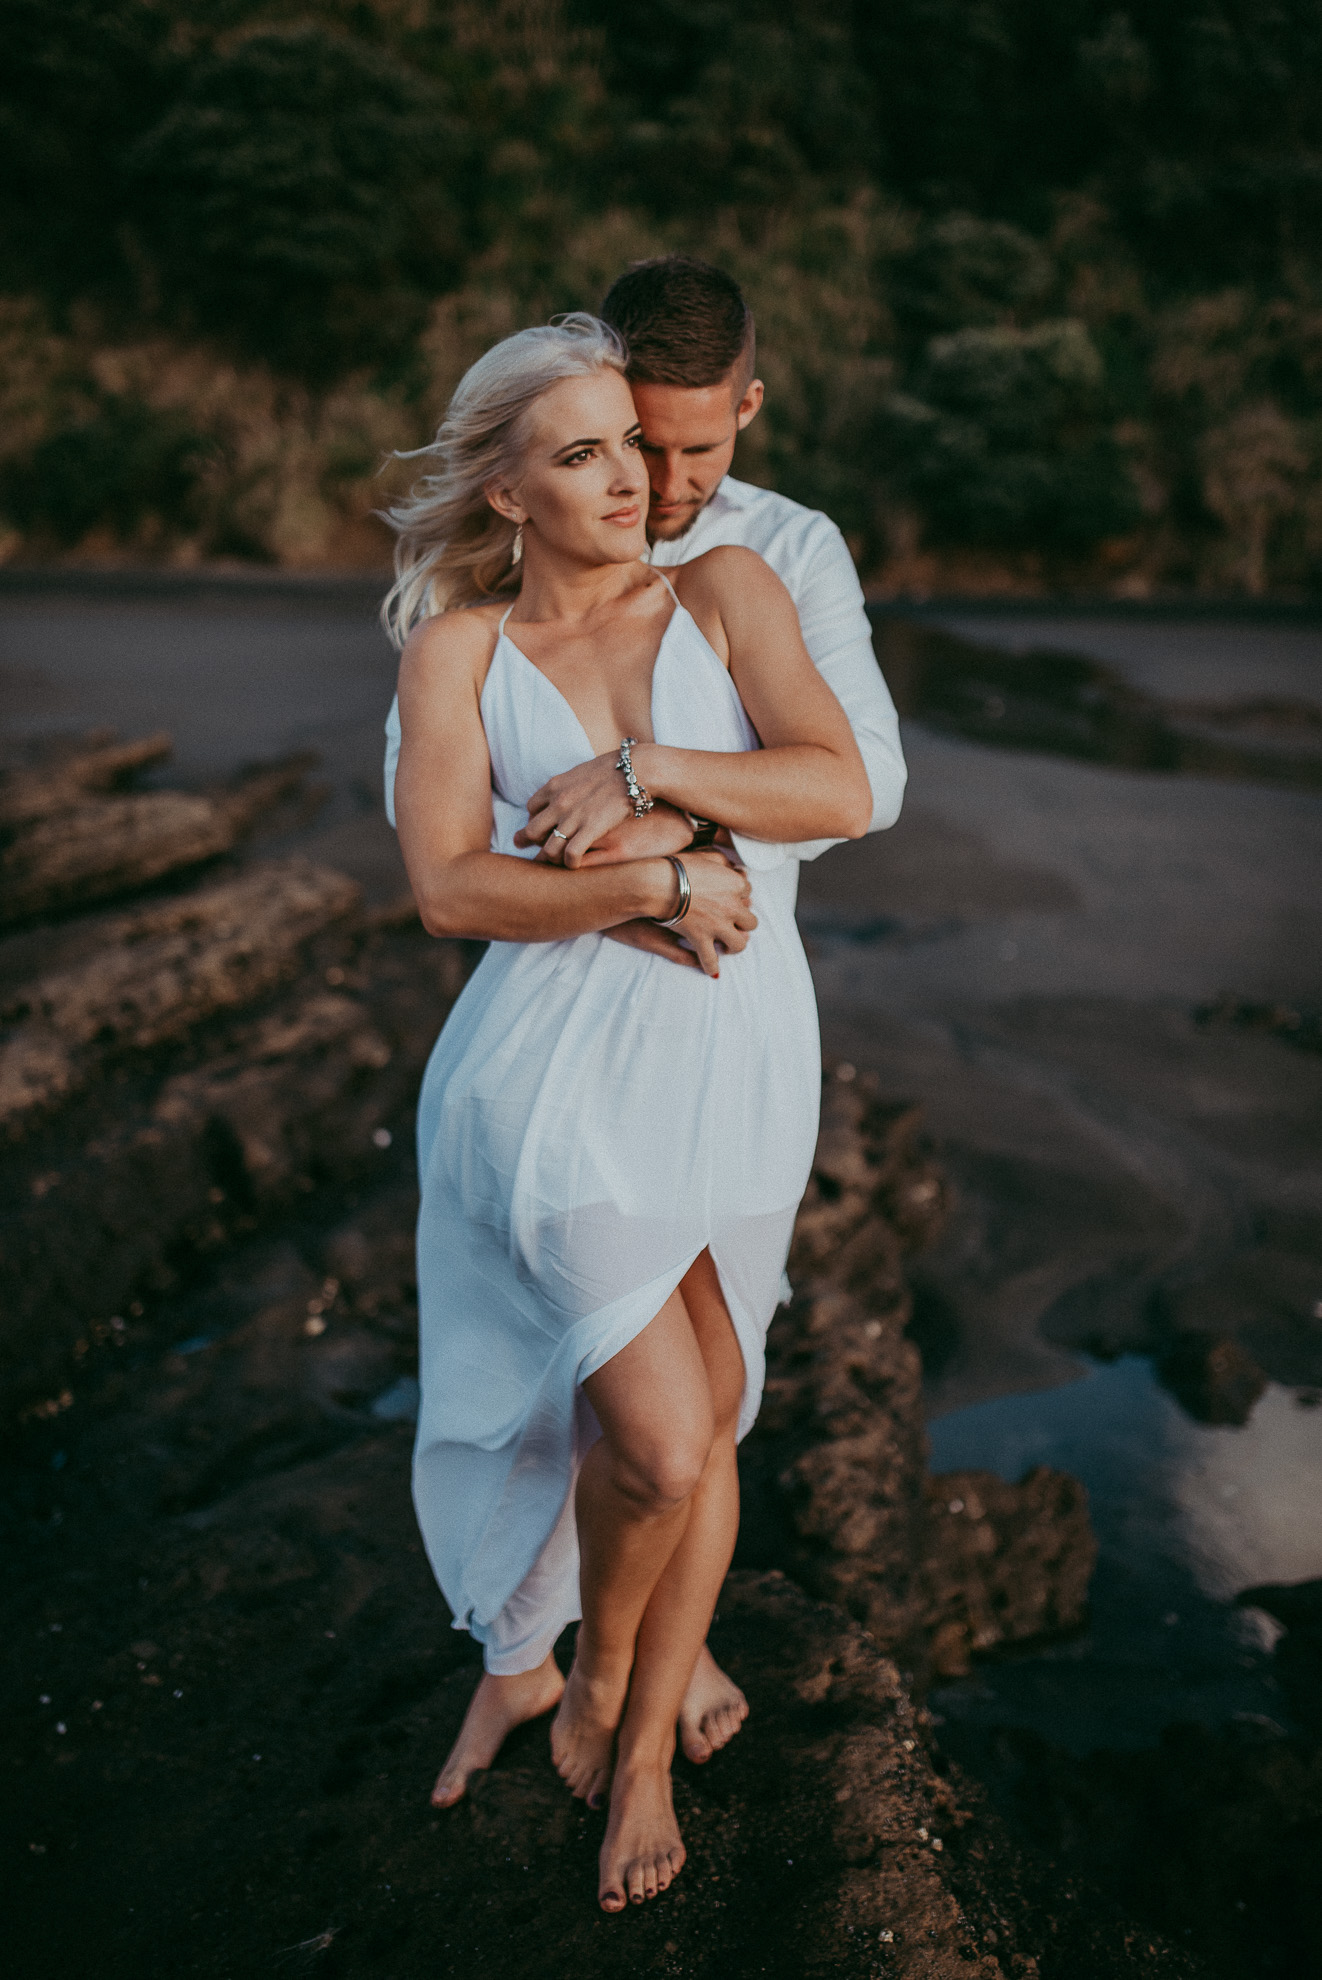 RAGLAN BEACH PRE-WEDDING ENGAGEMENT SESSION {AUCKLAND-WAIKATO WEDDING PHOTOGRAPHER}